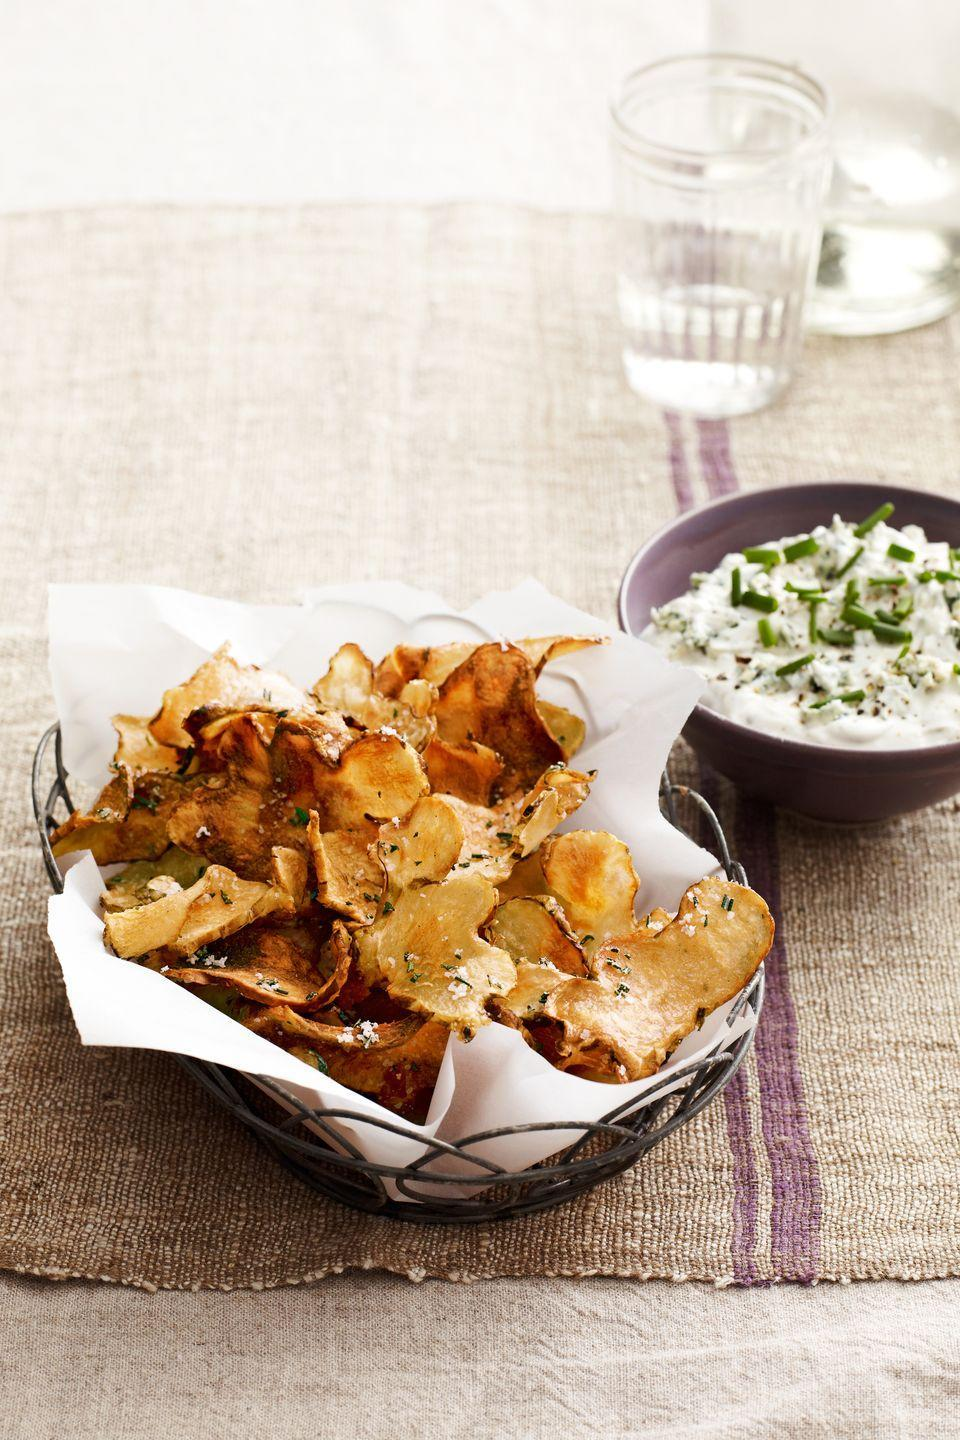 "<p>This seasonal take on chips and dip is full of deep, rich flavors and perfect for a Super Bowl bash.</p><p><span><strong><a href=""https://www.countryliving.com/food-drinks/recipes/a4851/sunchoke-chips-warm-blue-cheese-dip-recipe-clv0214/"" rel=""nofollow noopener"" target=""_blank"" data-ylk=""slk:Get the recipe"" class=""link rapid-noclick-resp"">Get the recipe</a>.</strong></span></p>"